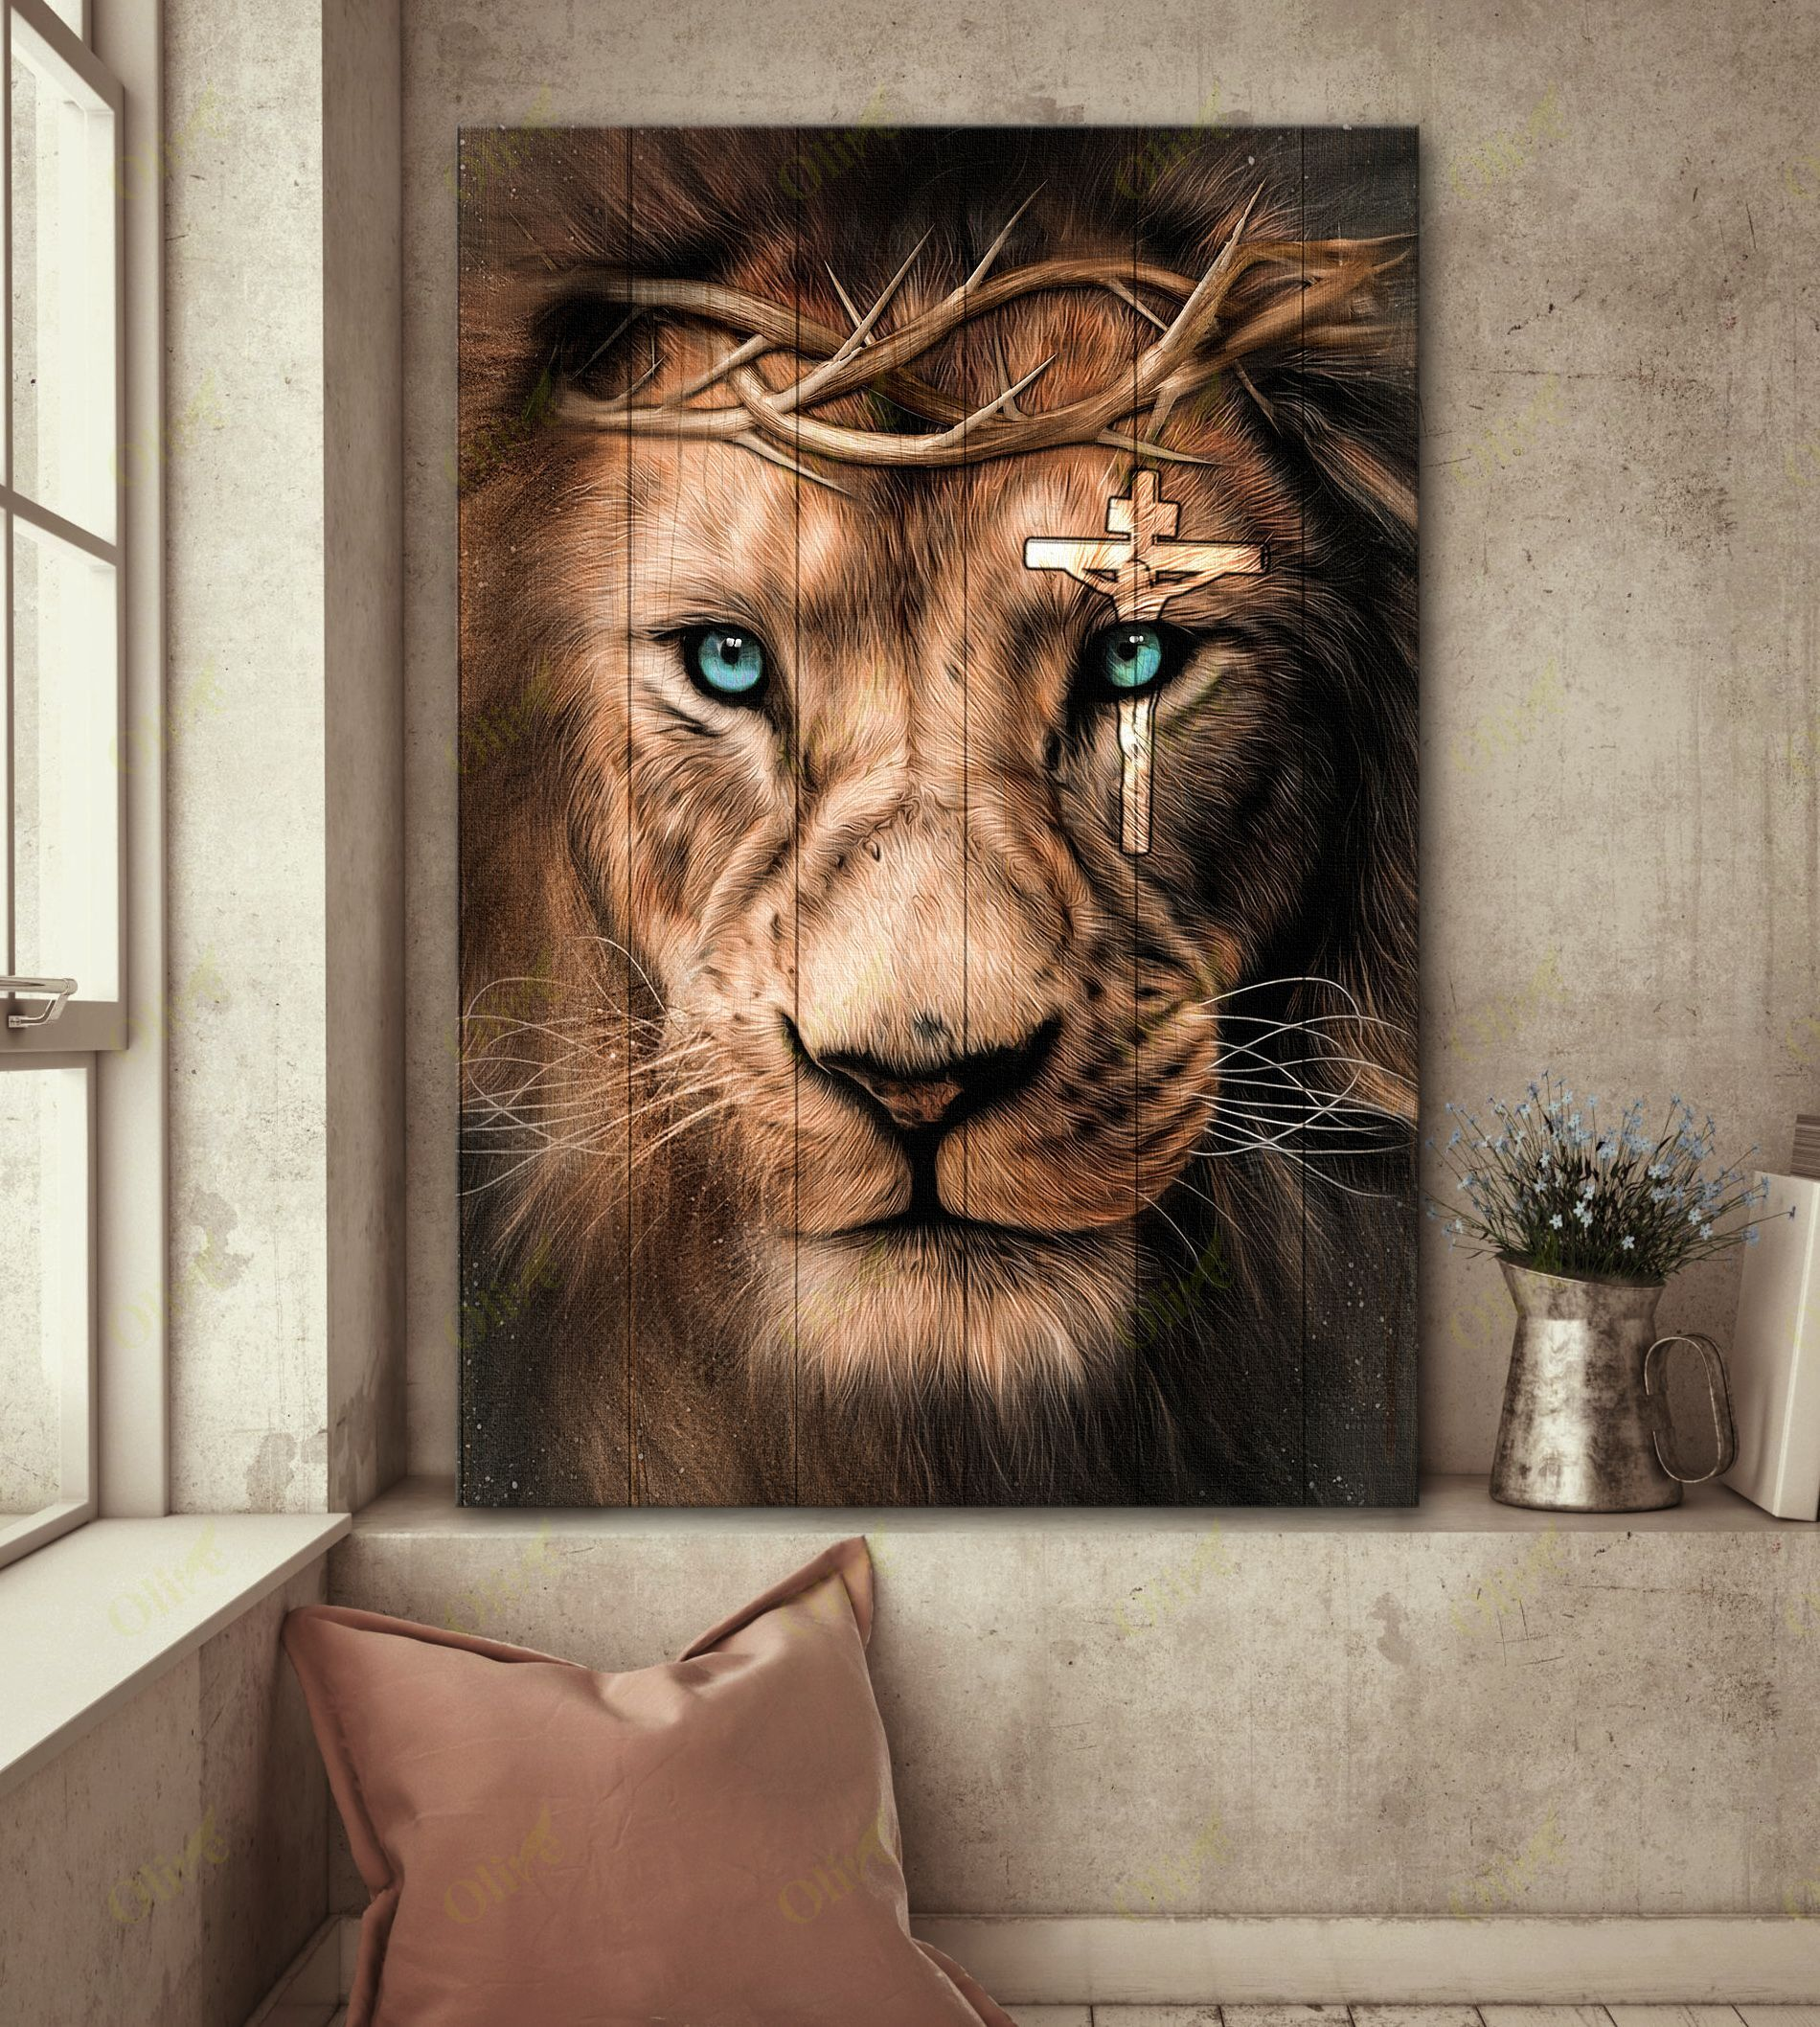 Jesus - Awesome lion and cross on his eye Canvas